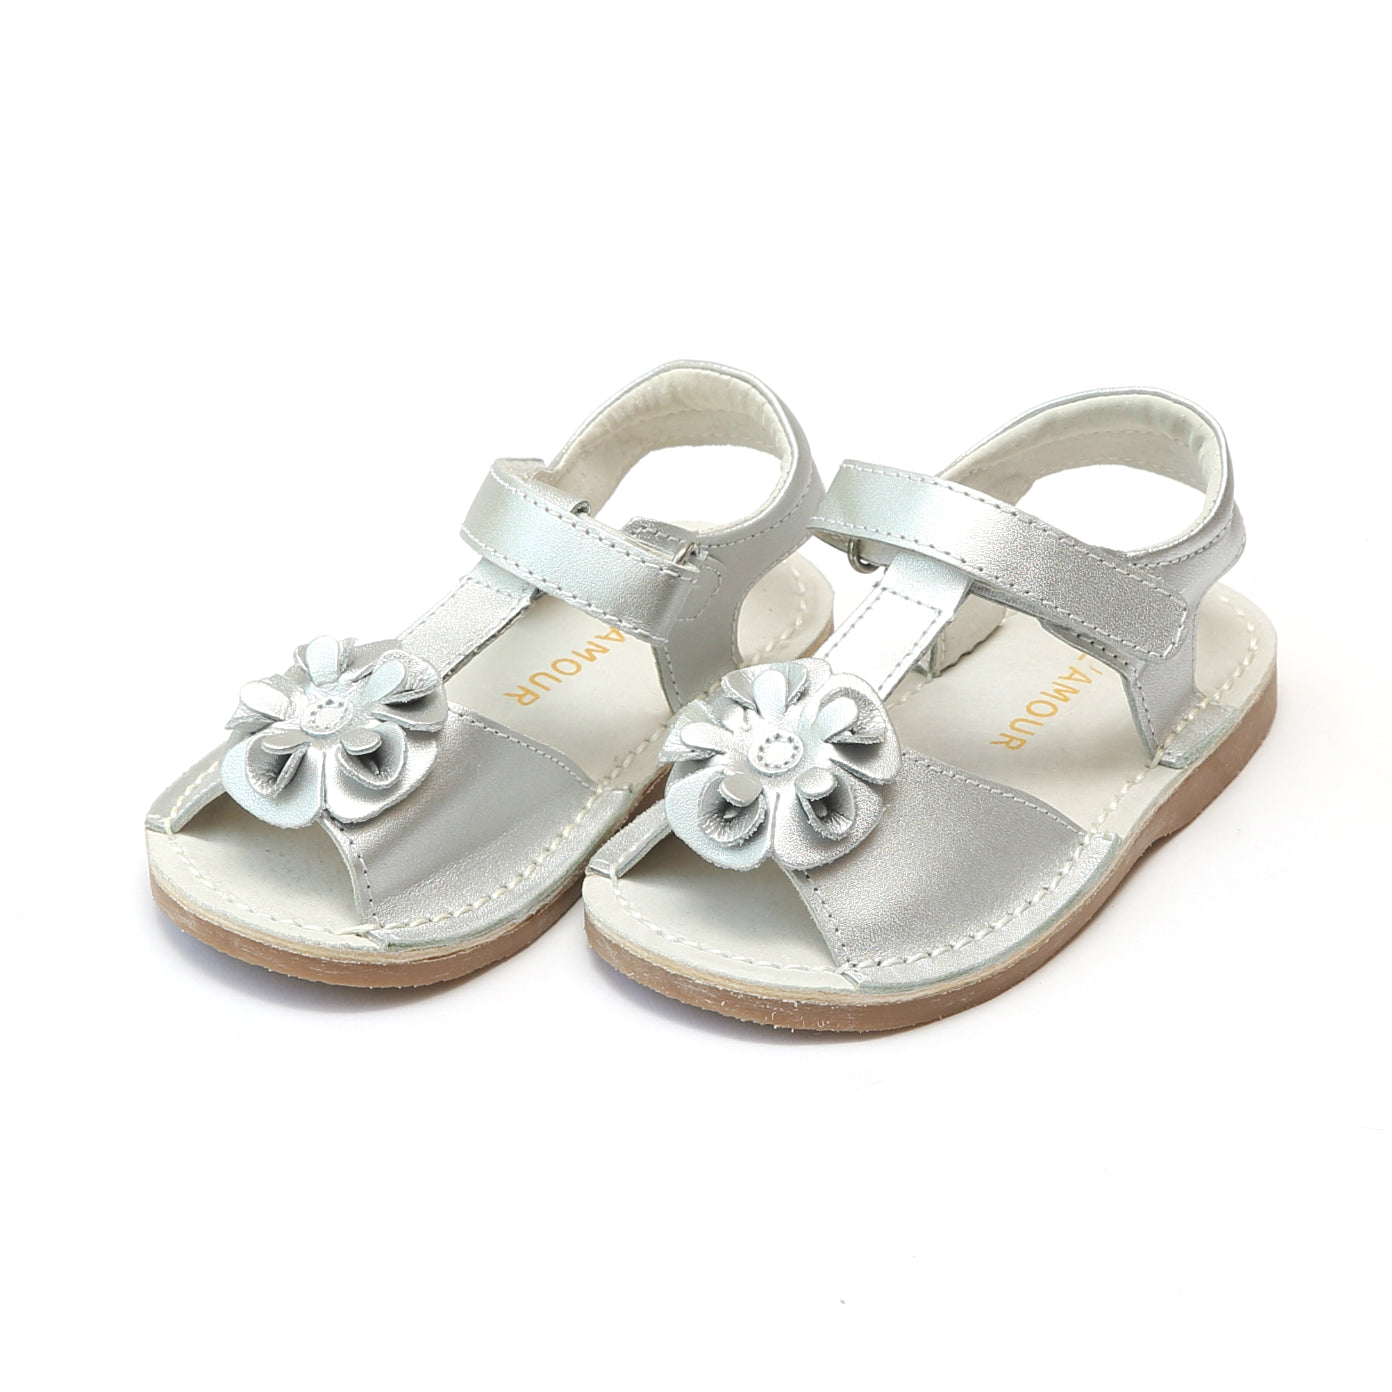 2003ceeac4f8 L Amour Girls Suzanne Flower T-Strap Leather Sandal – L Amour Shoes